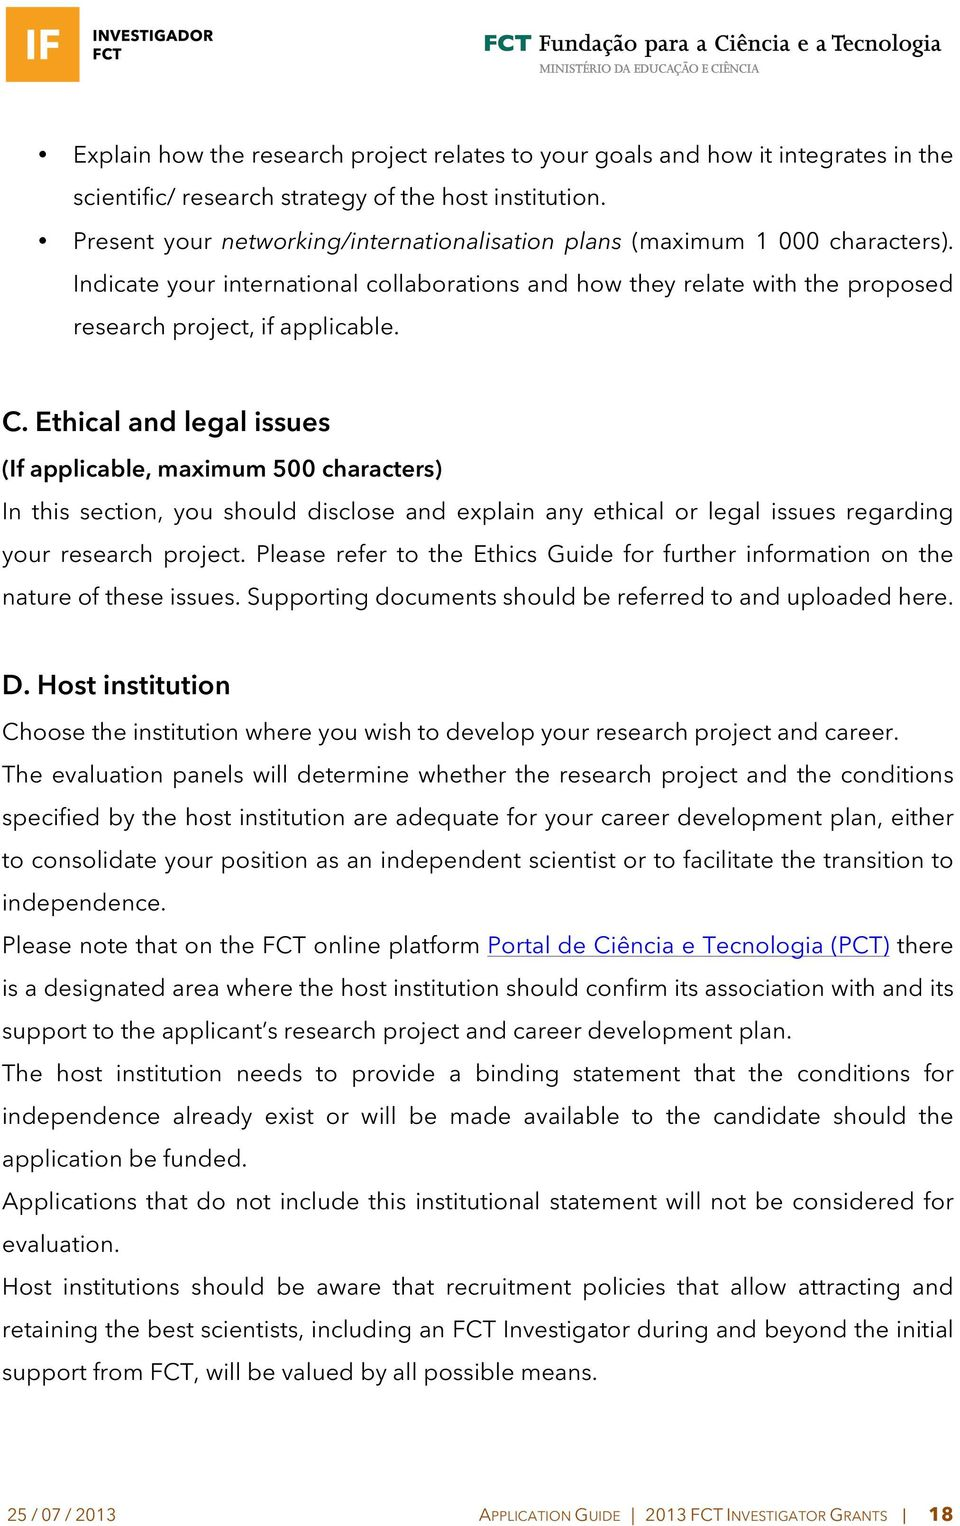 Ethical and legal issues (If applicable, maximum 500 characters) In this section, you should disclose and explain any ethical or legal issues regarding your research project.